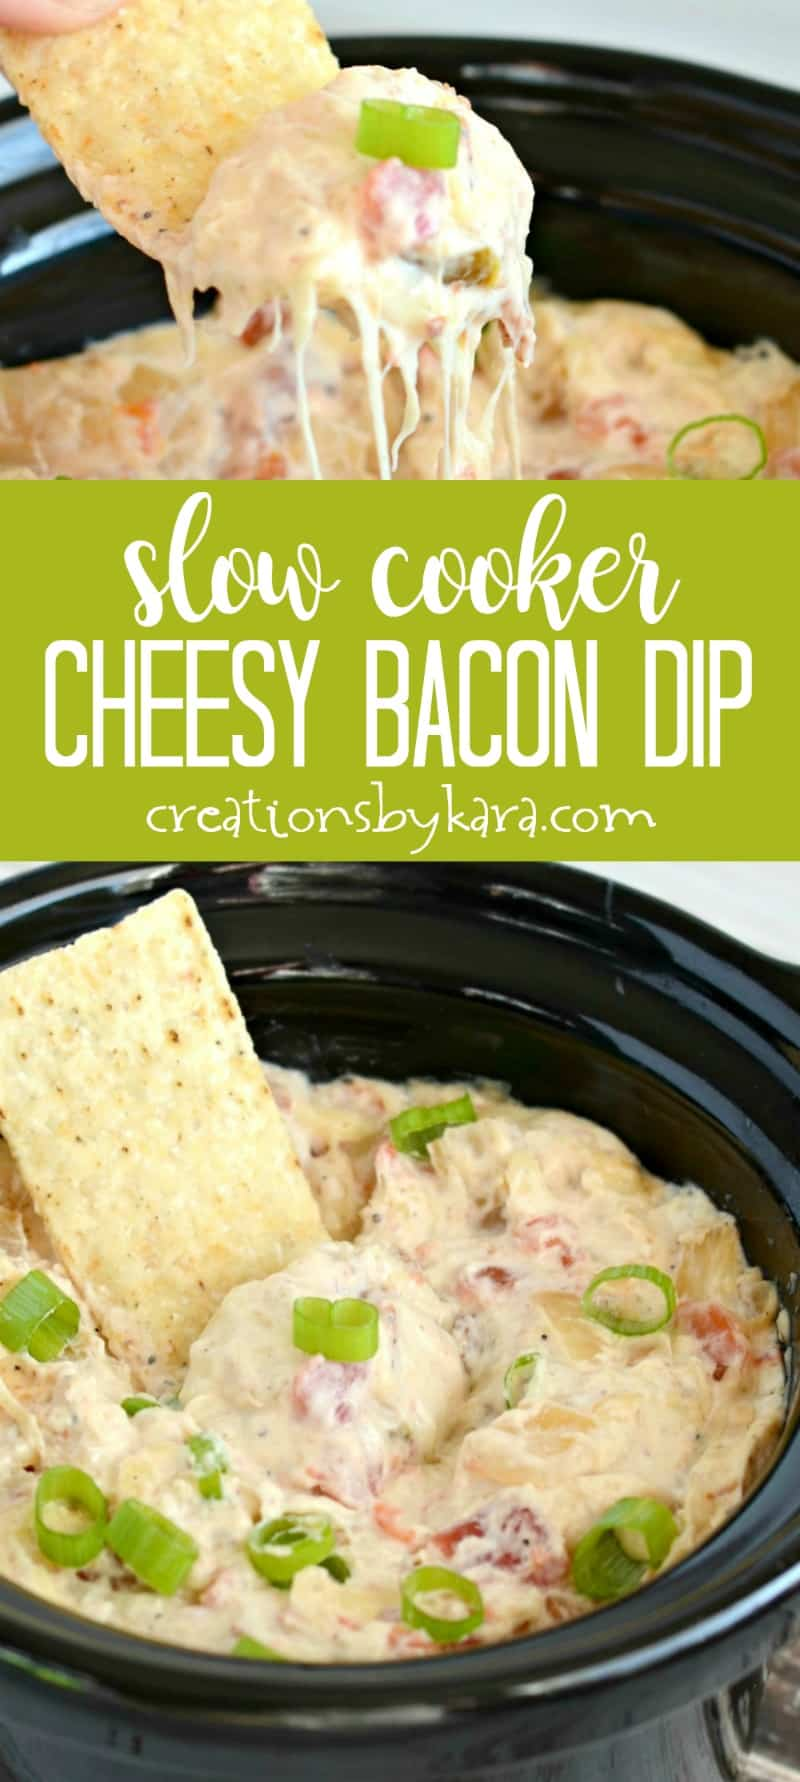 Slow Cooker Cheesy Bacon Dip - loaded with cheese and bacon, and a bit of a kick, this dip is a crowd pleaser! #appetizer #gameday #recipe